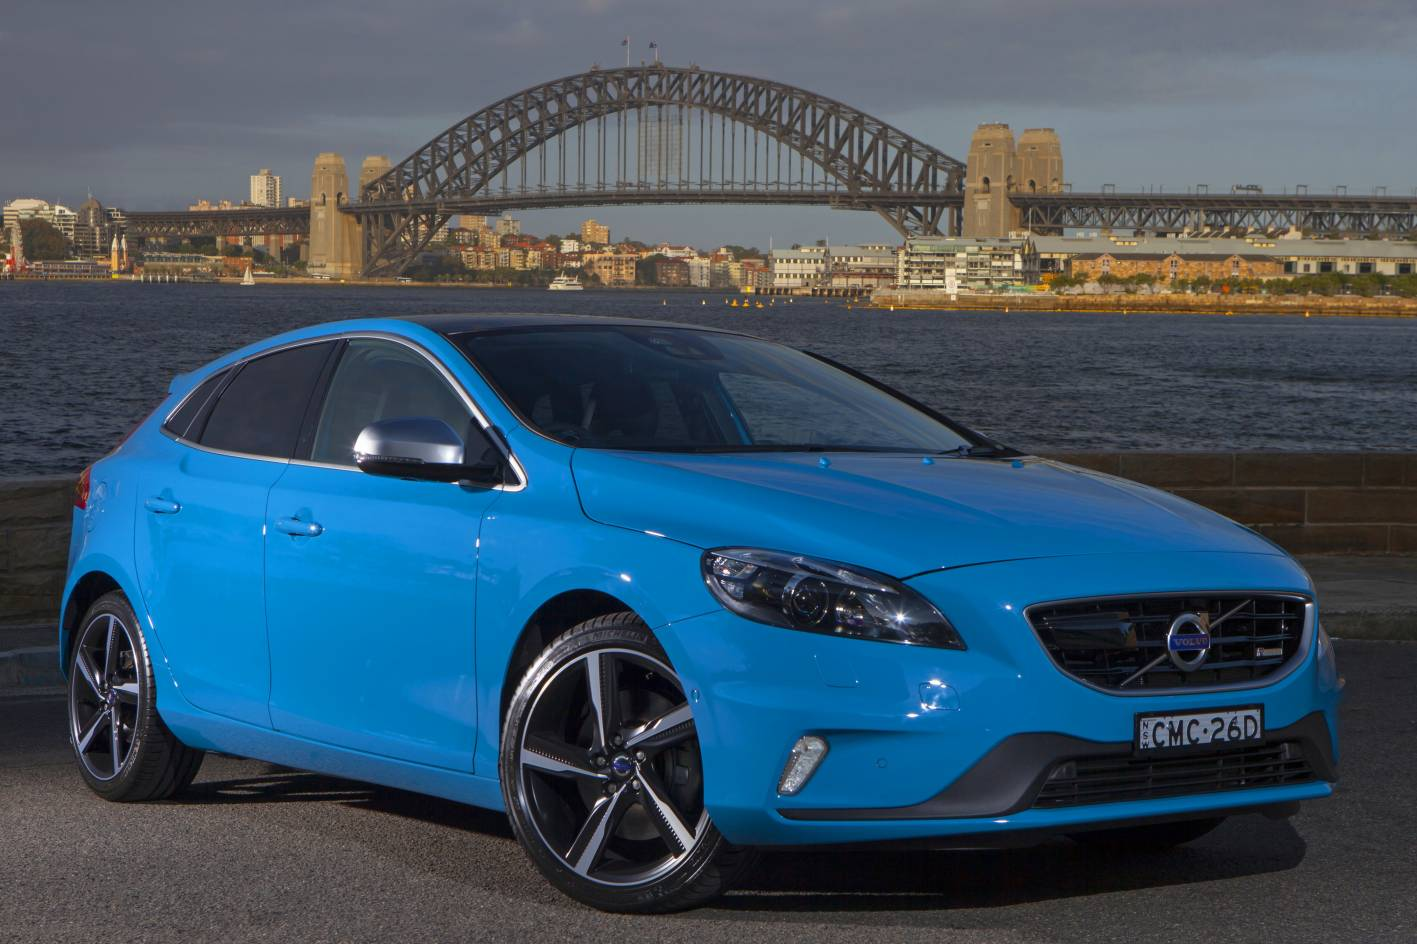 Volvos For Sale >> Volvo Cars - News: 2013 V40 on sale now